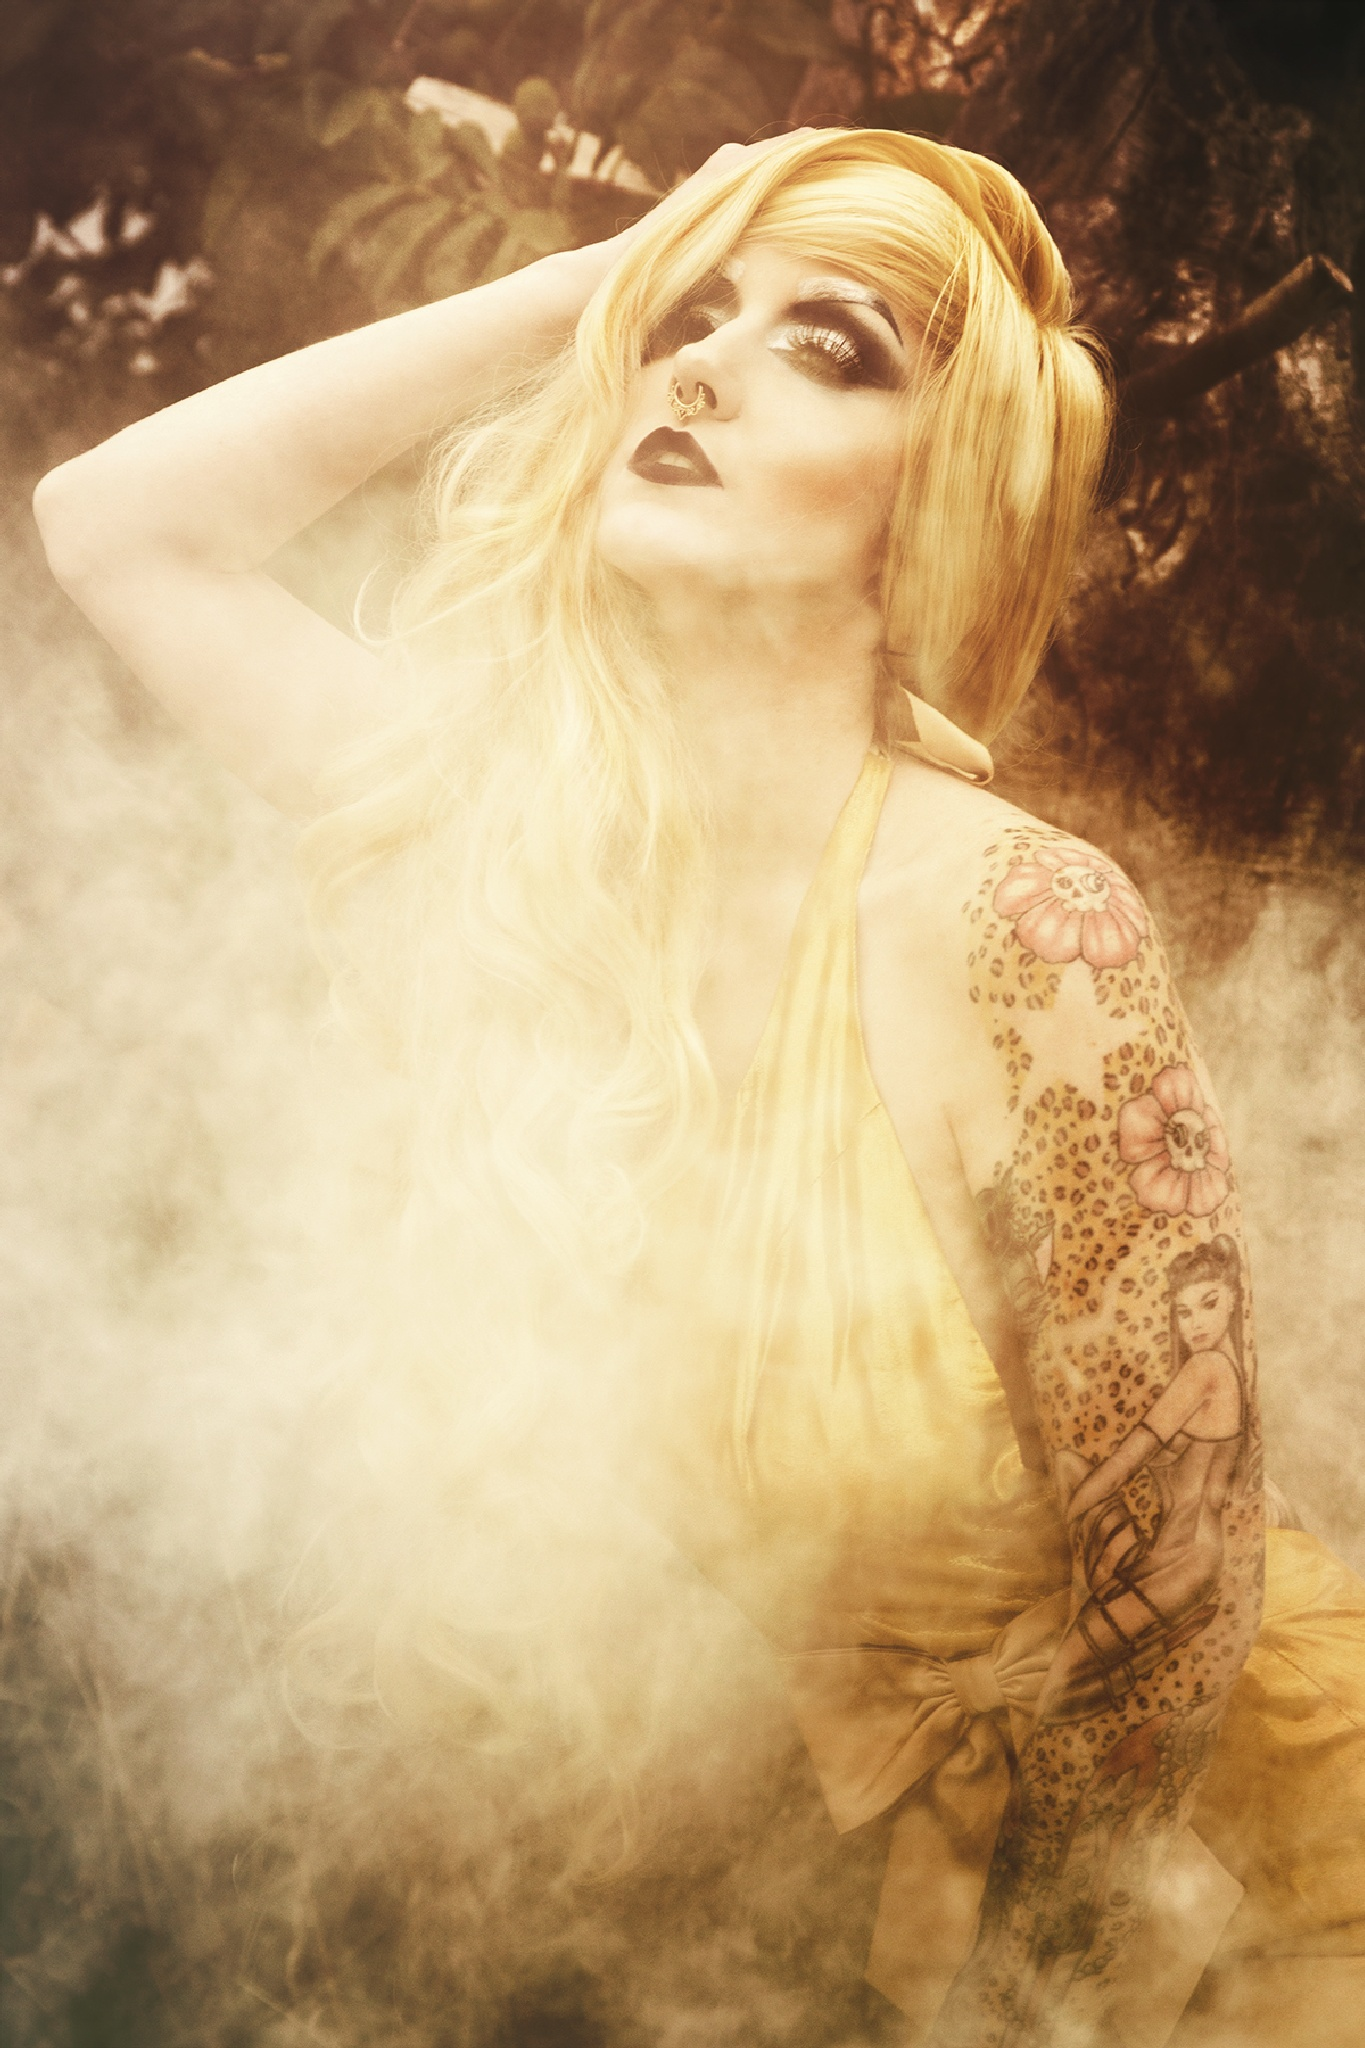 Hypnotic sun by Unholy Beauty Fotodesign